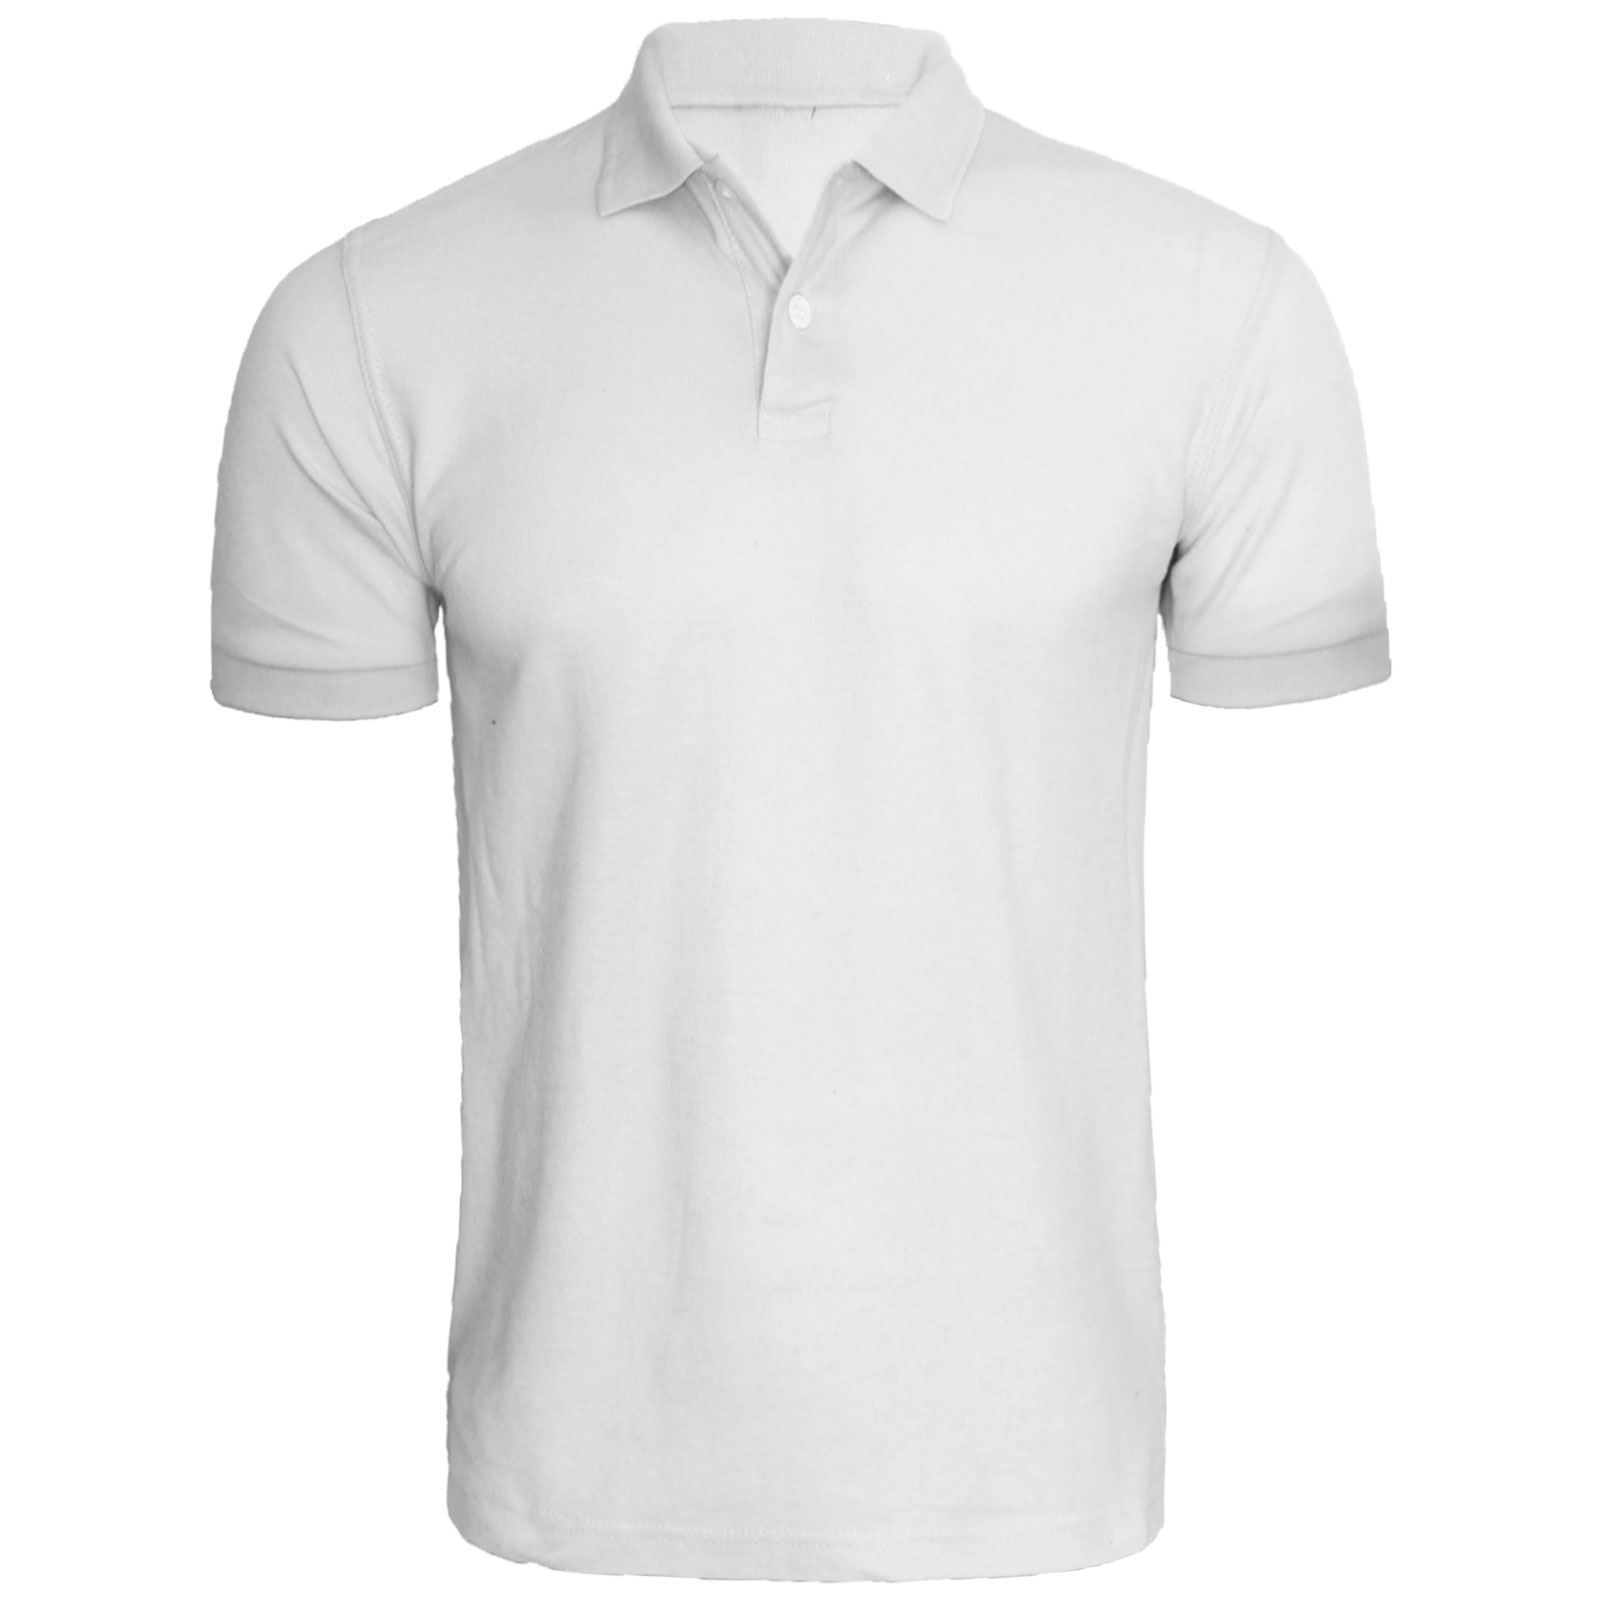 White polo shirt front images for Man in polo shirt